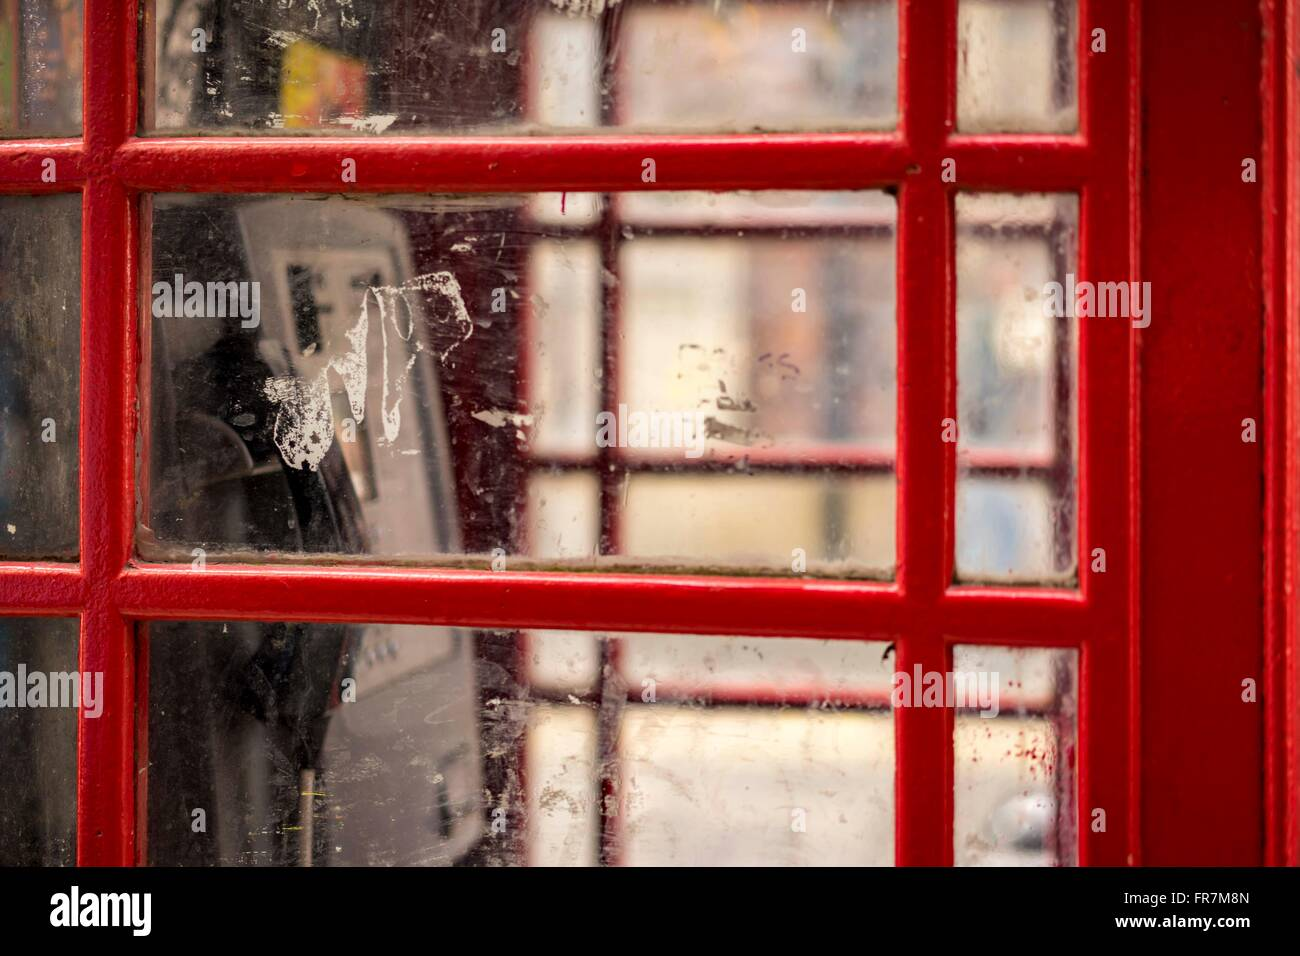 View in through the window of a red public telephone box,London, UK - Stock Image